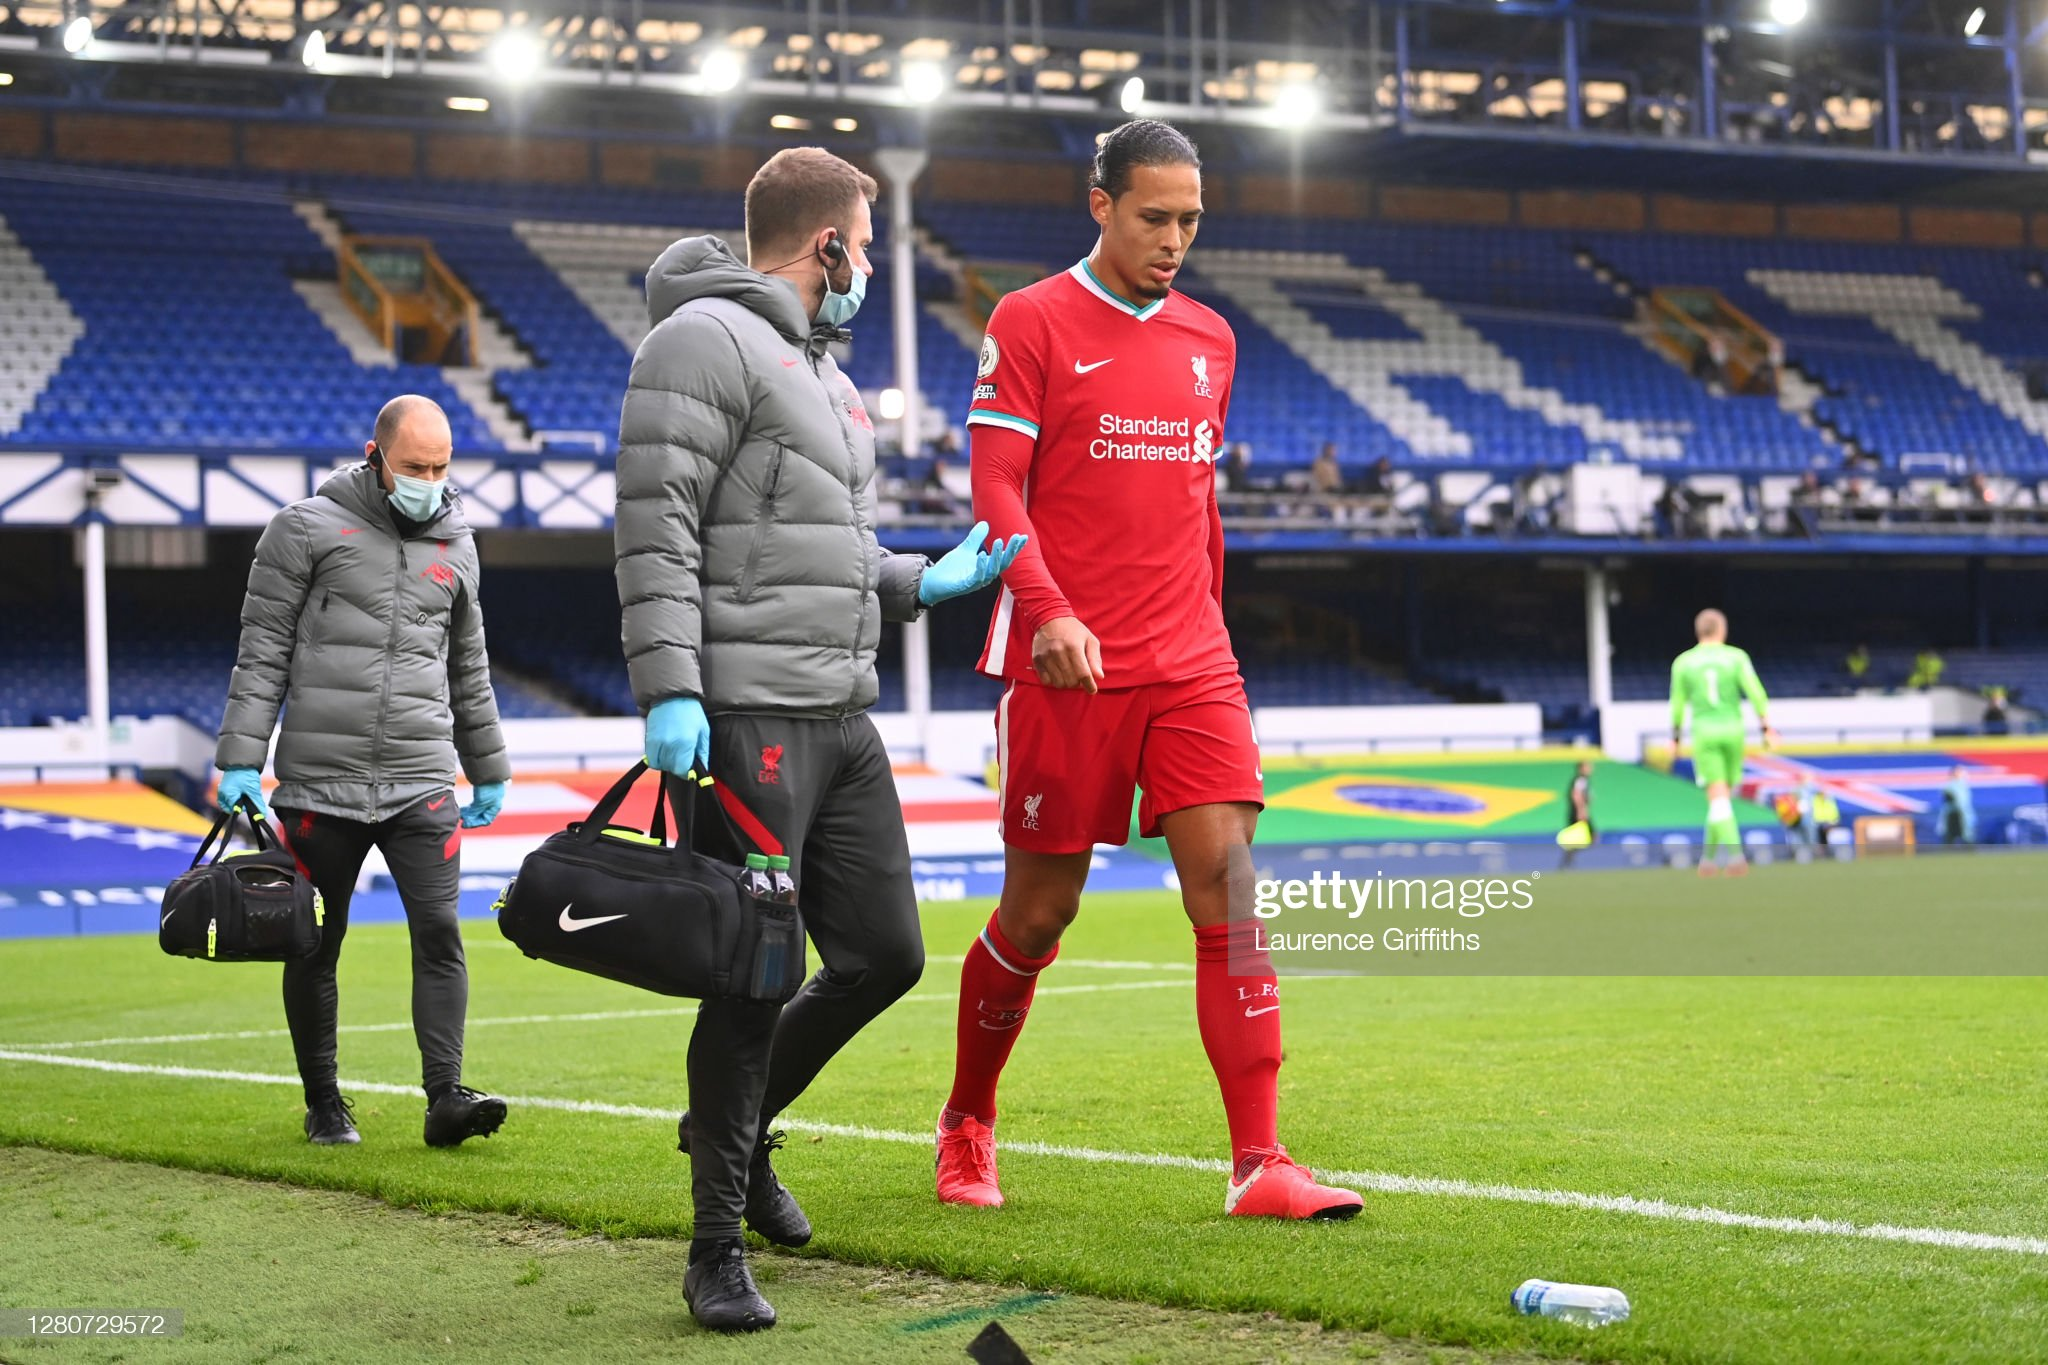 Van Dijk injury could prove highly costly for Liverpool